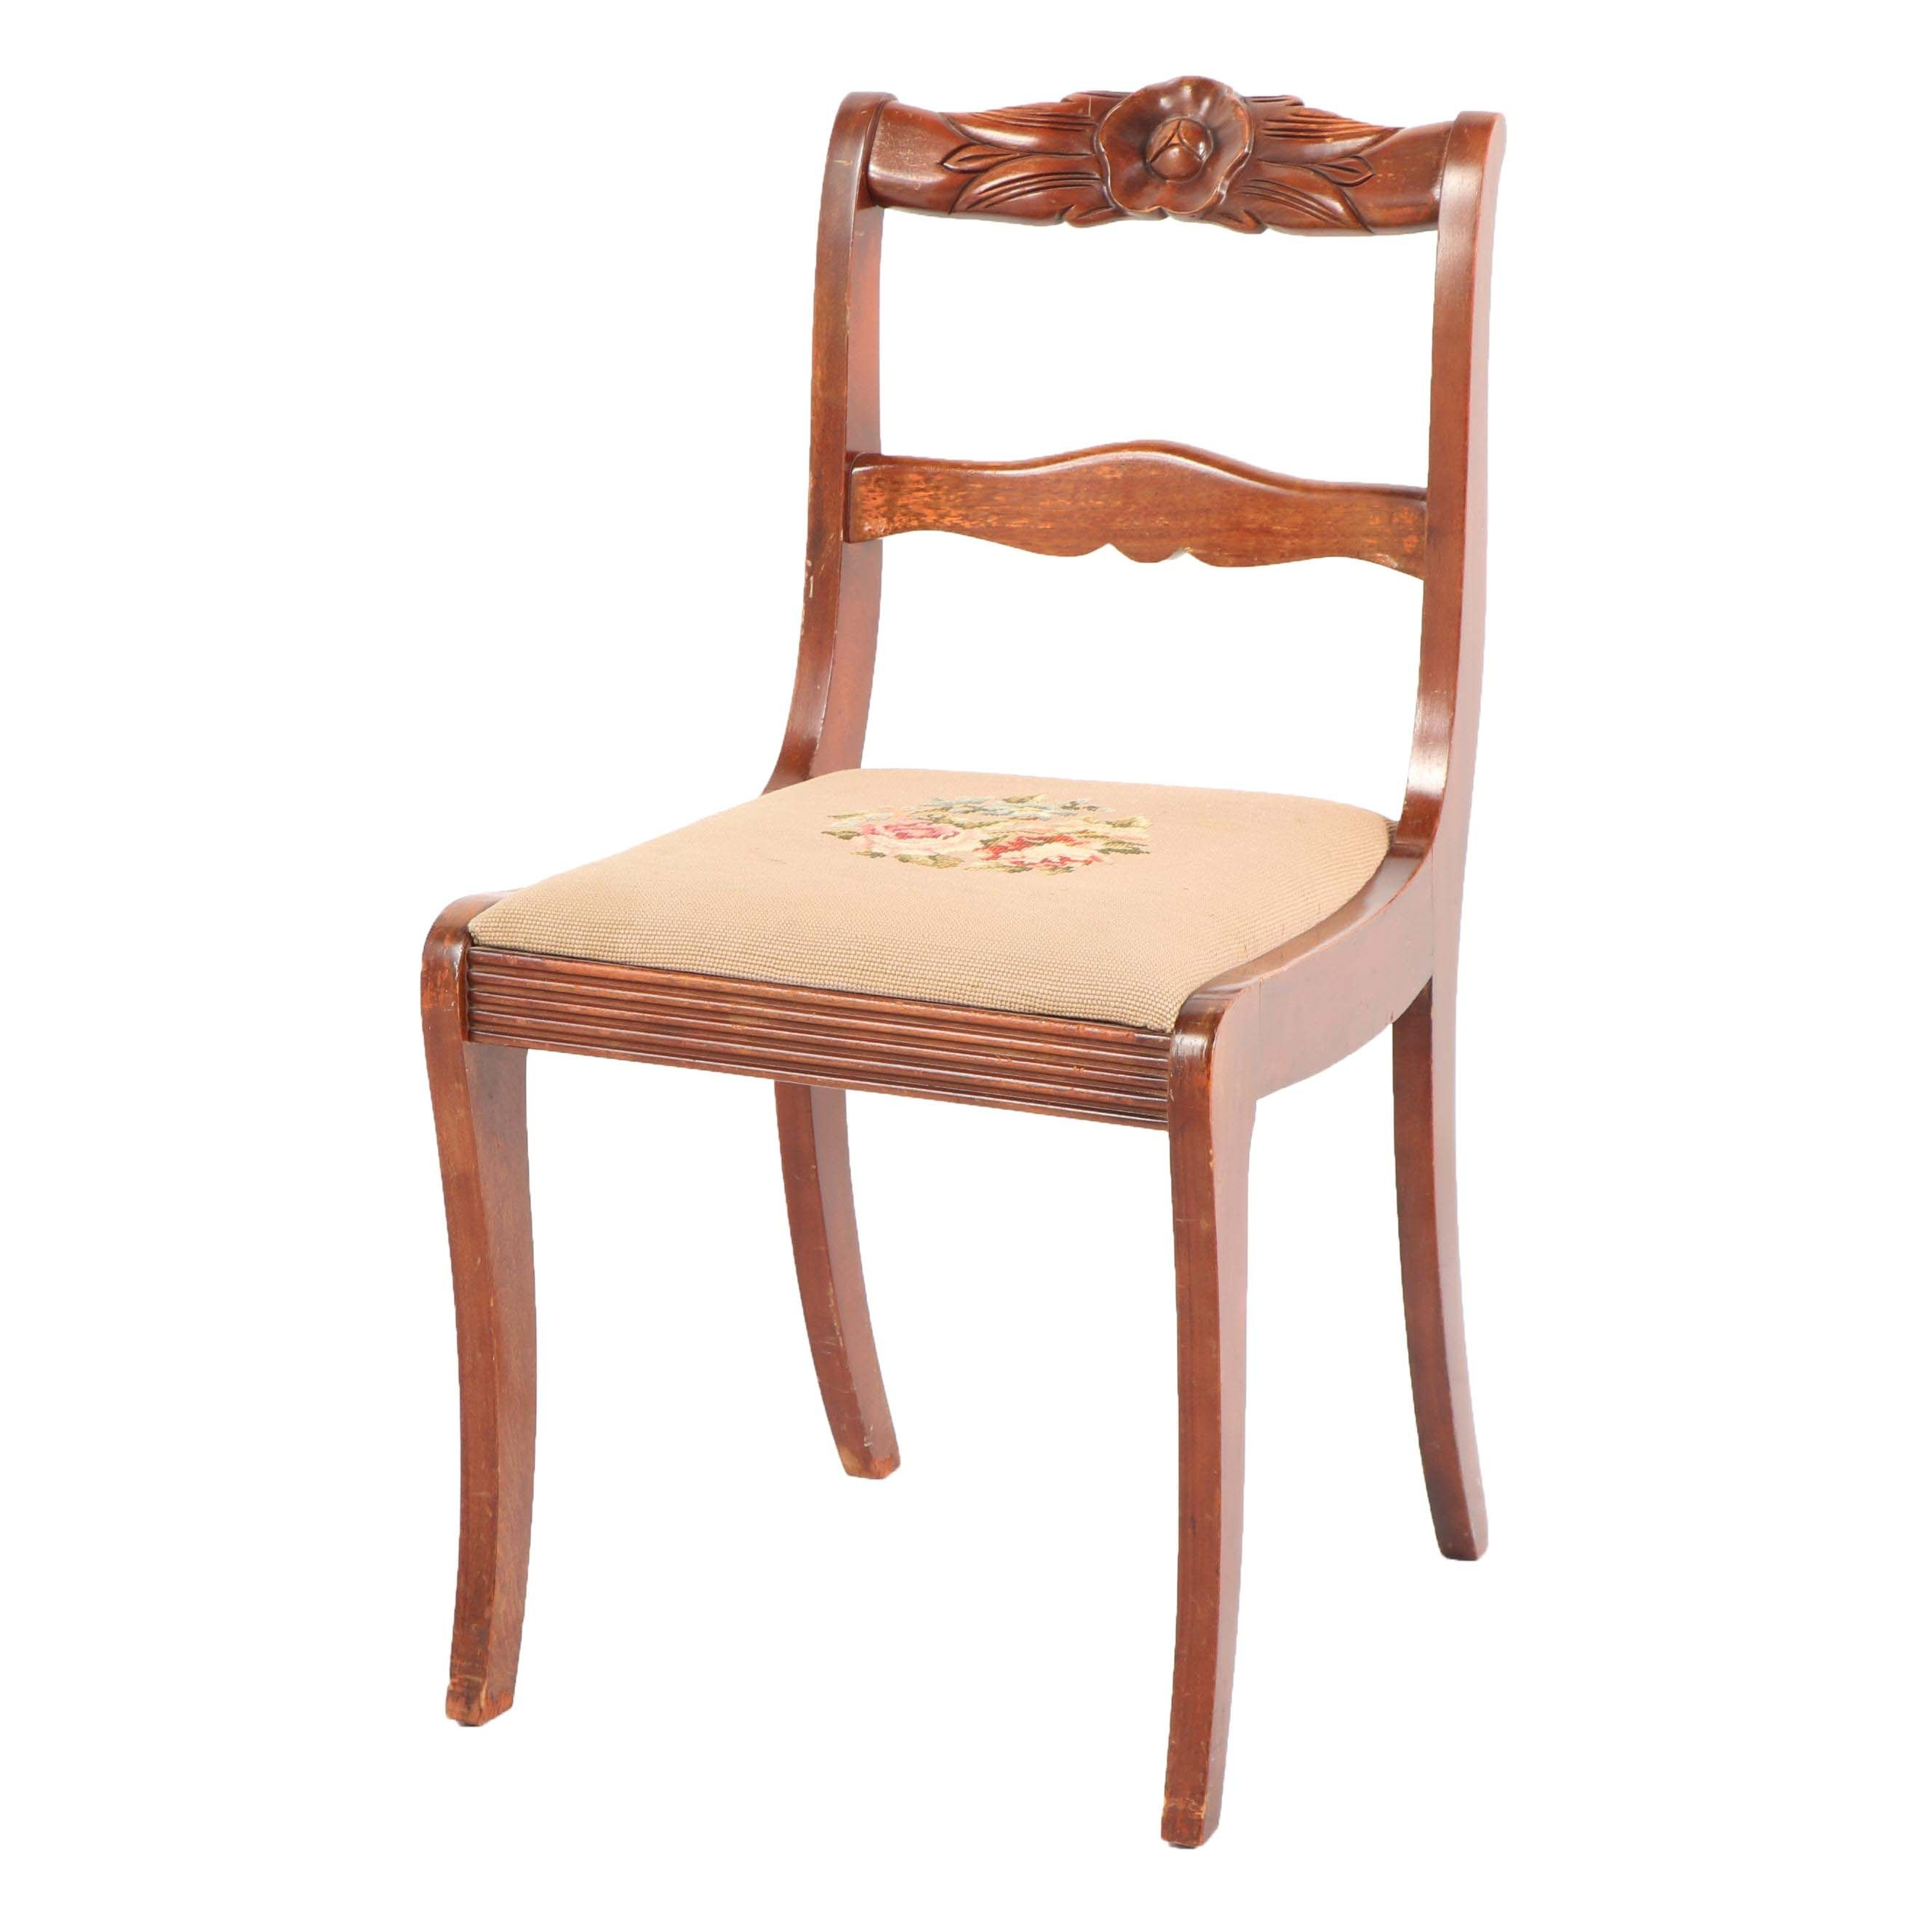 Victorian Style Walnut Side Chair with Needlepoint Seat, Mid-20th Century